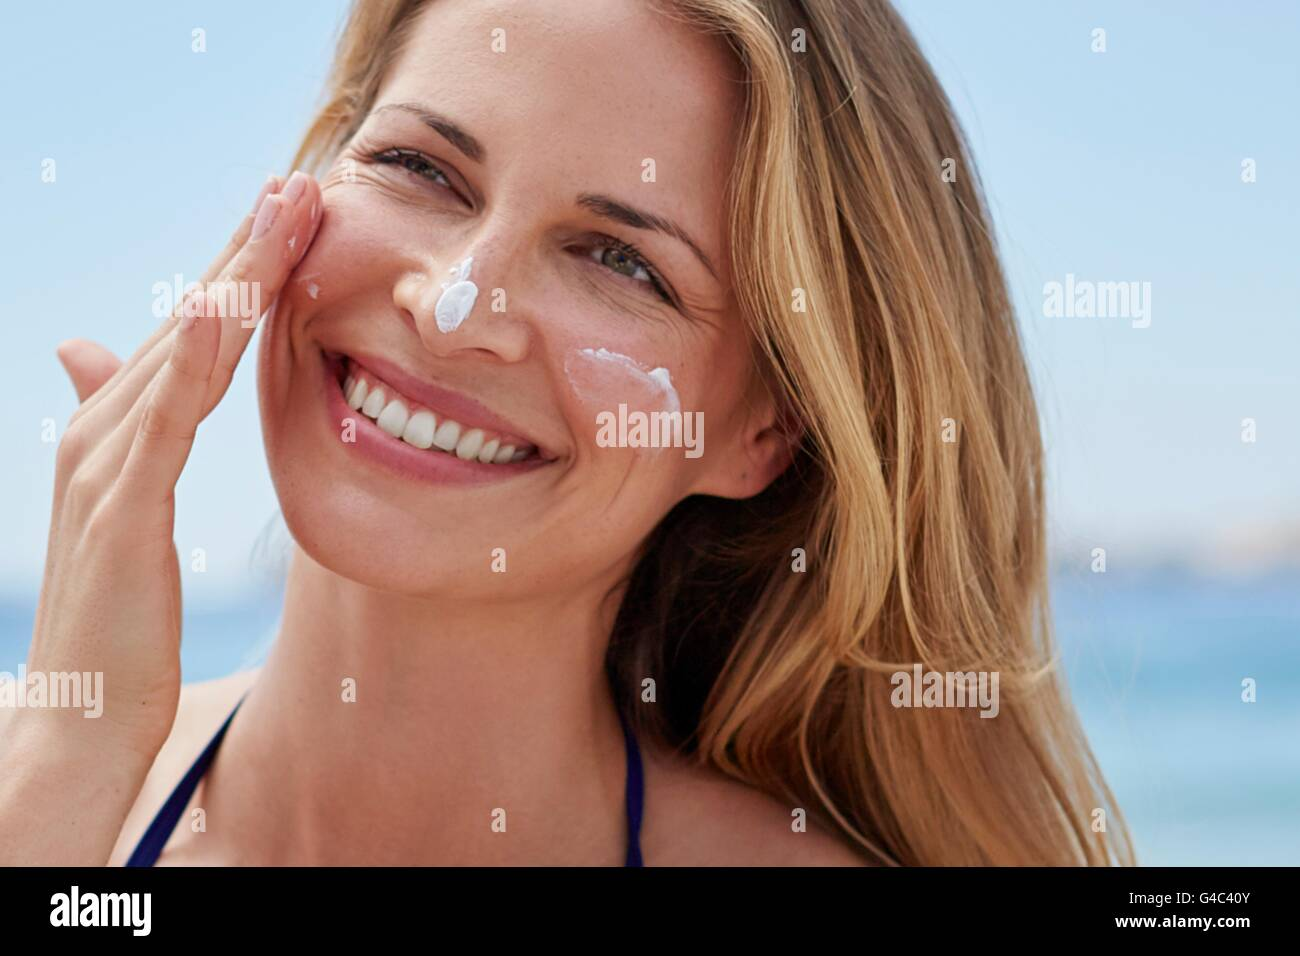 MODEL RELEASED. Young woman applying sun cream to her face. - Stock Image